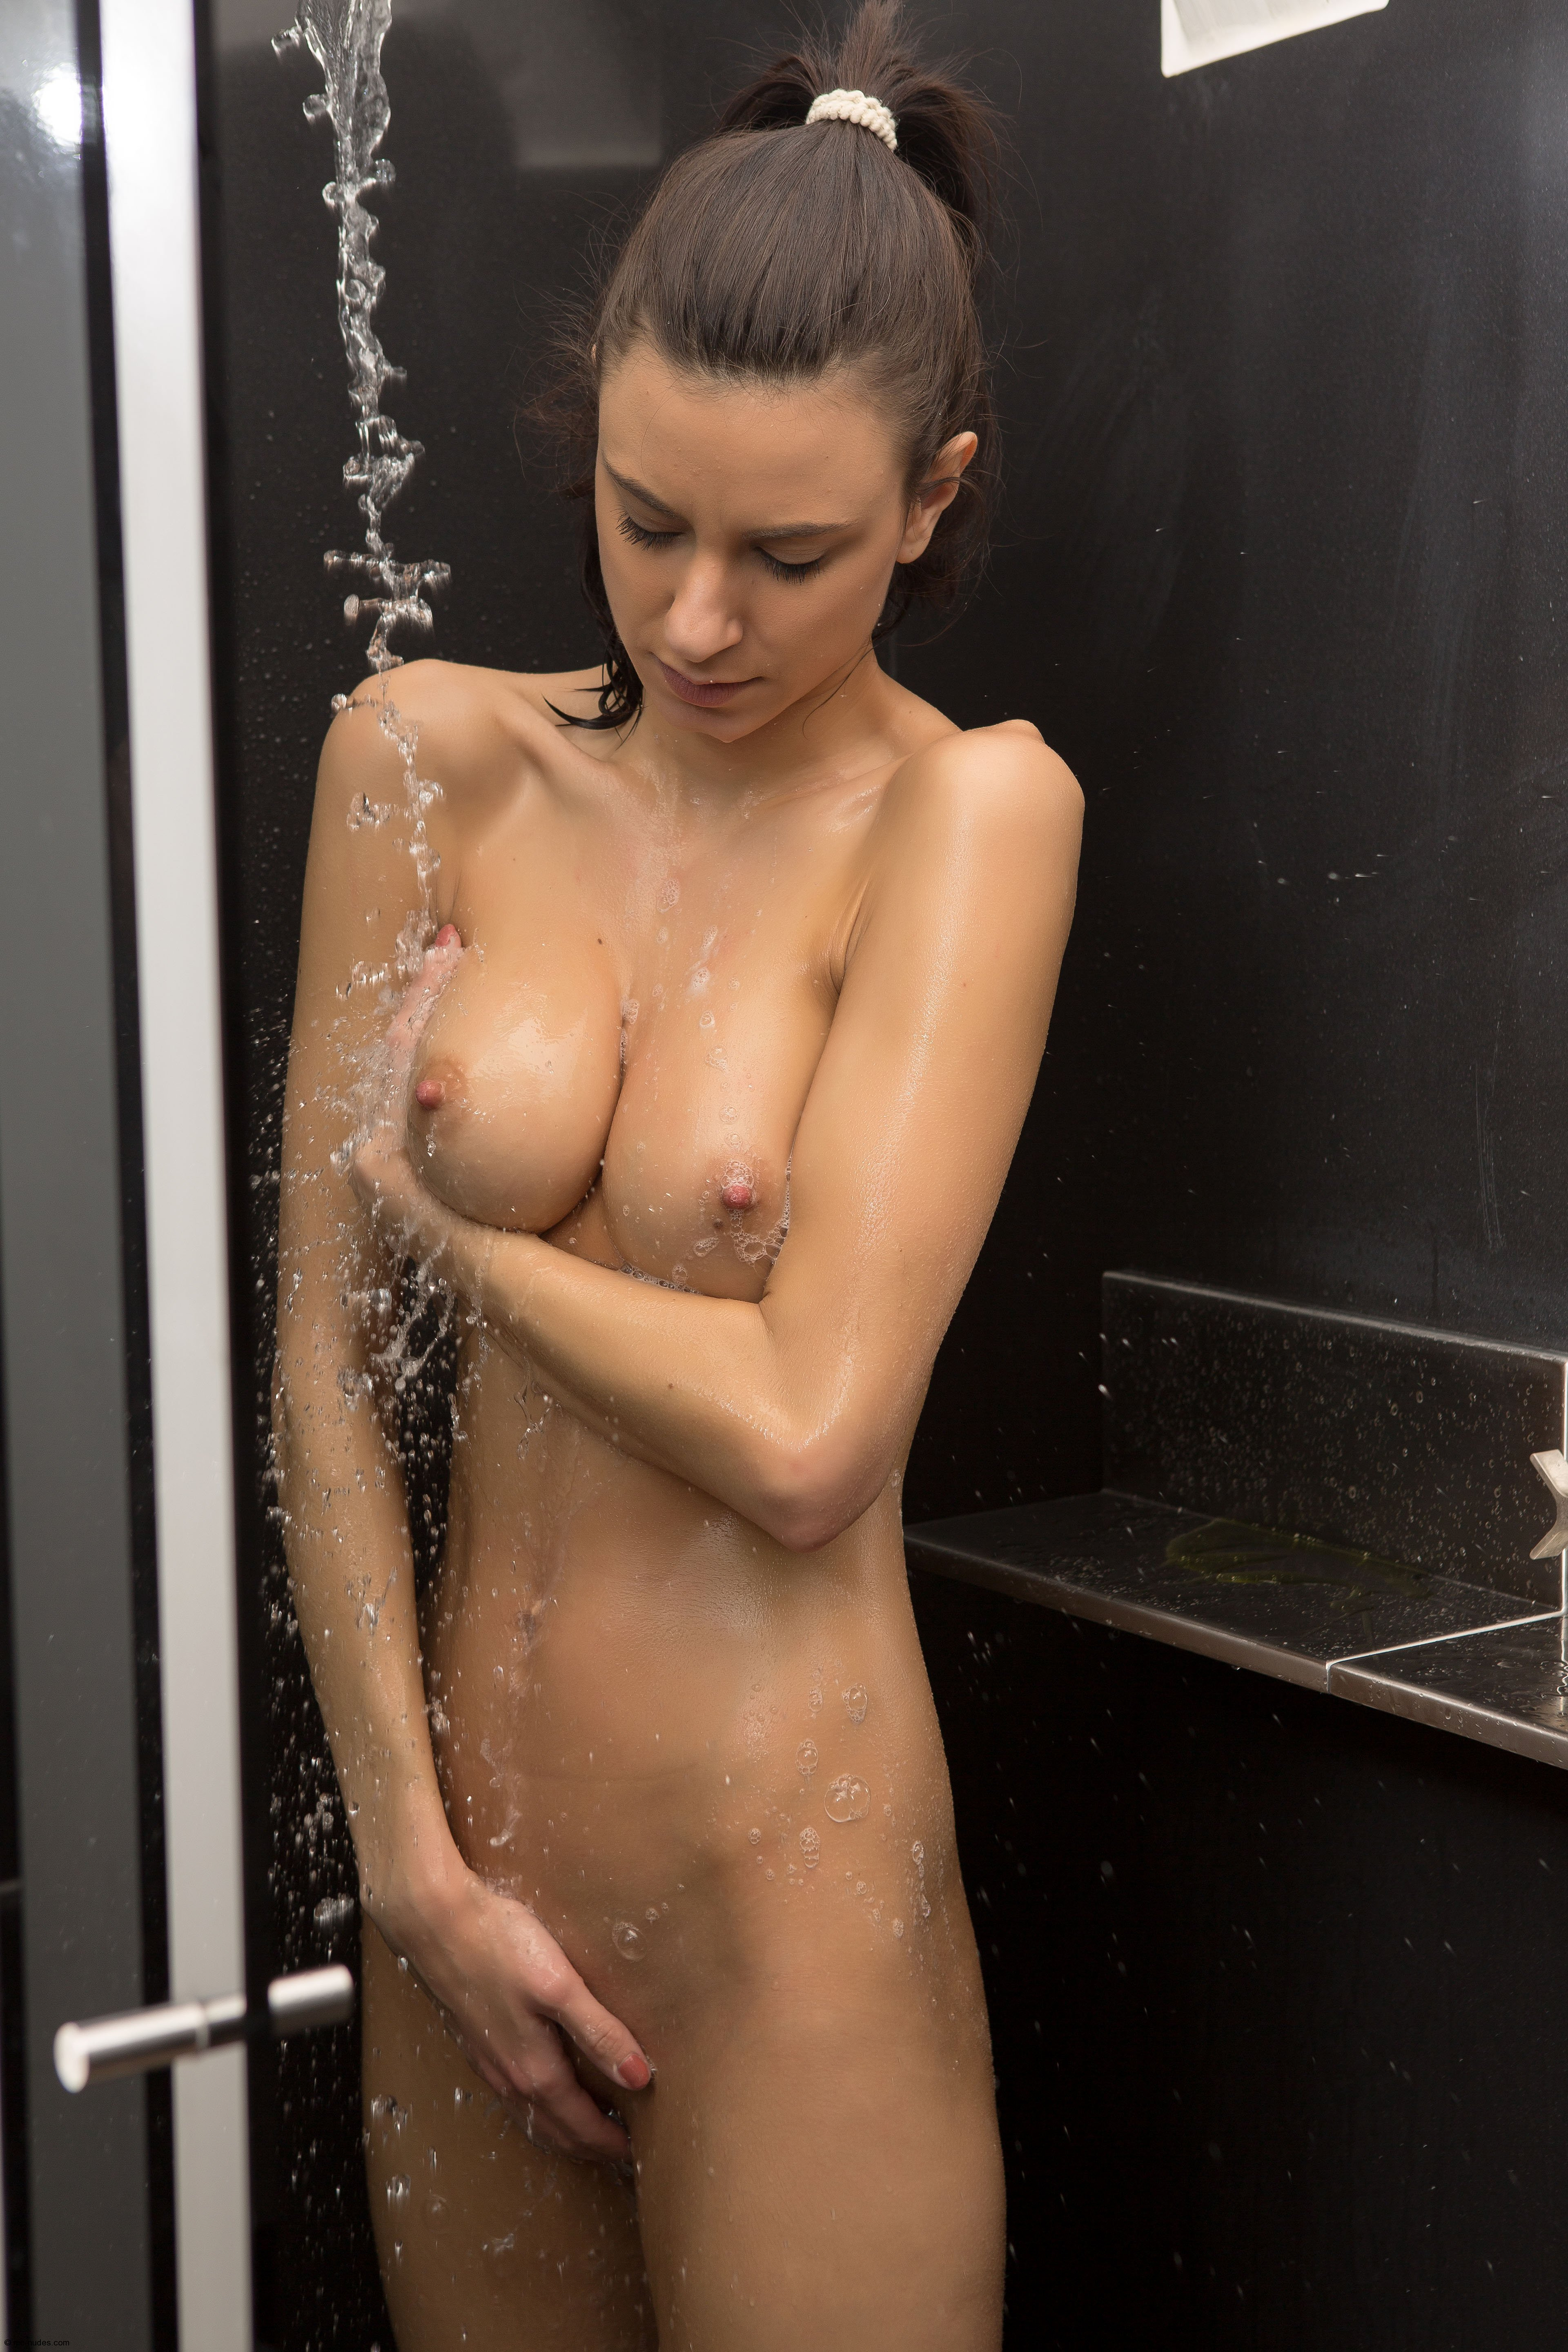 naked-chick-showering